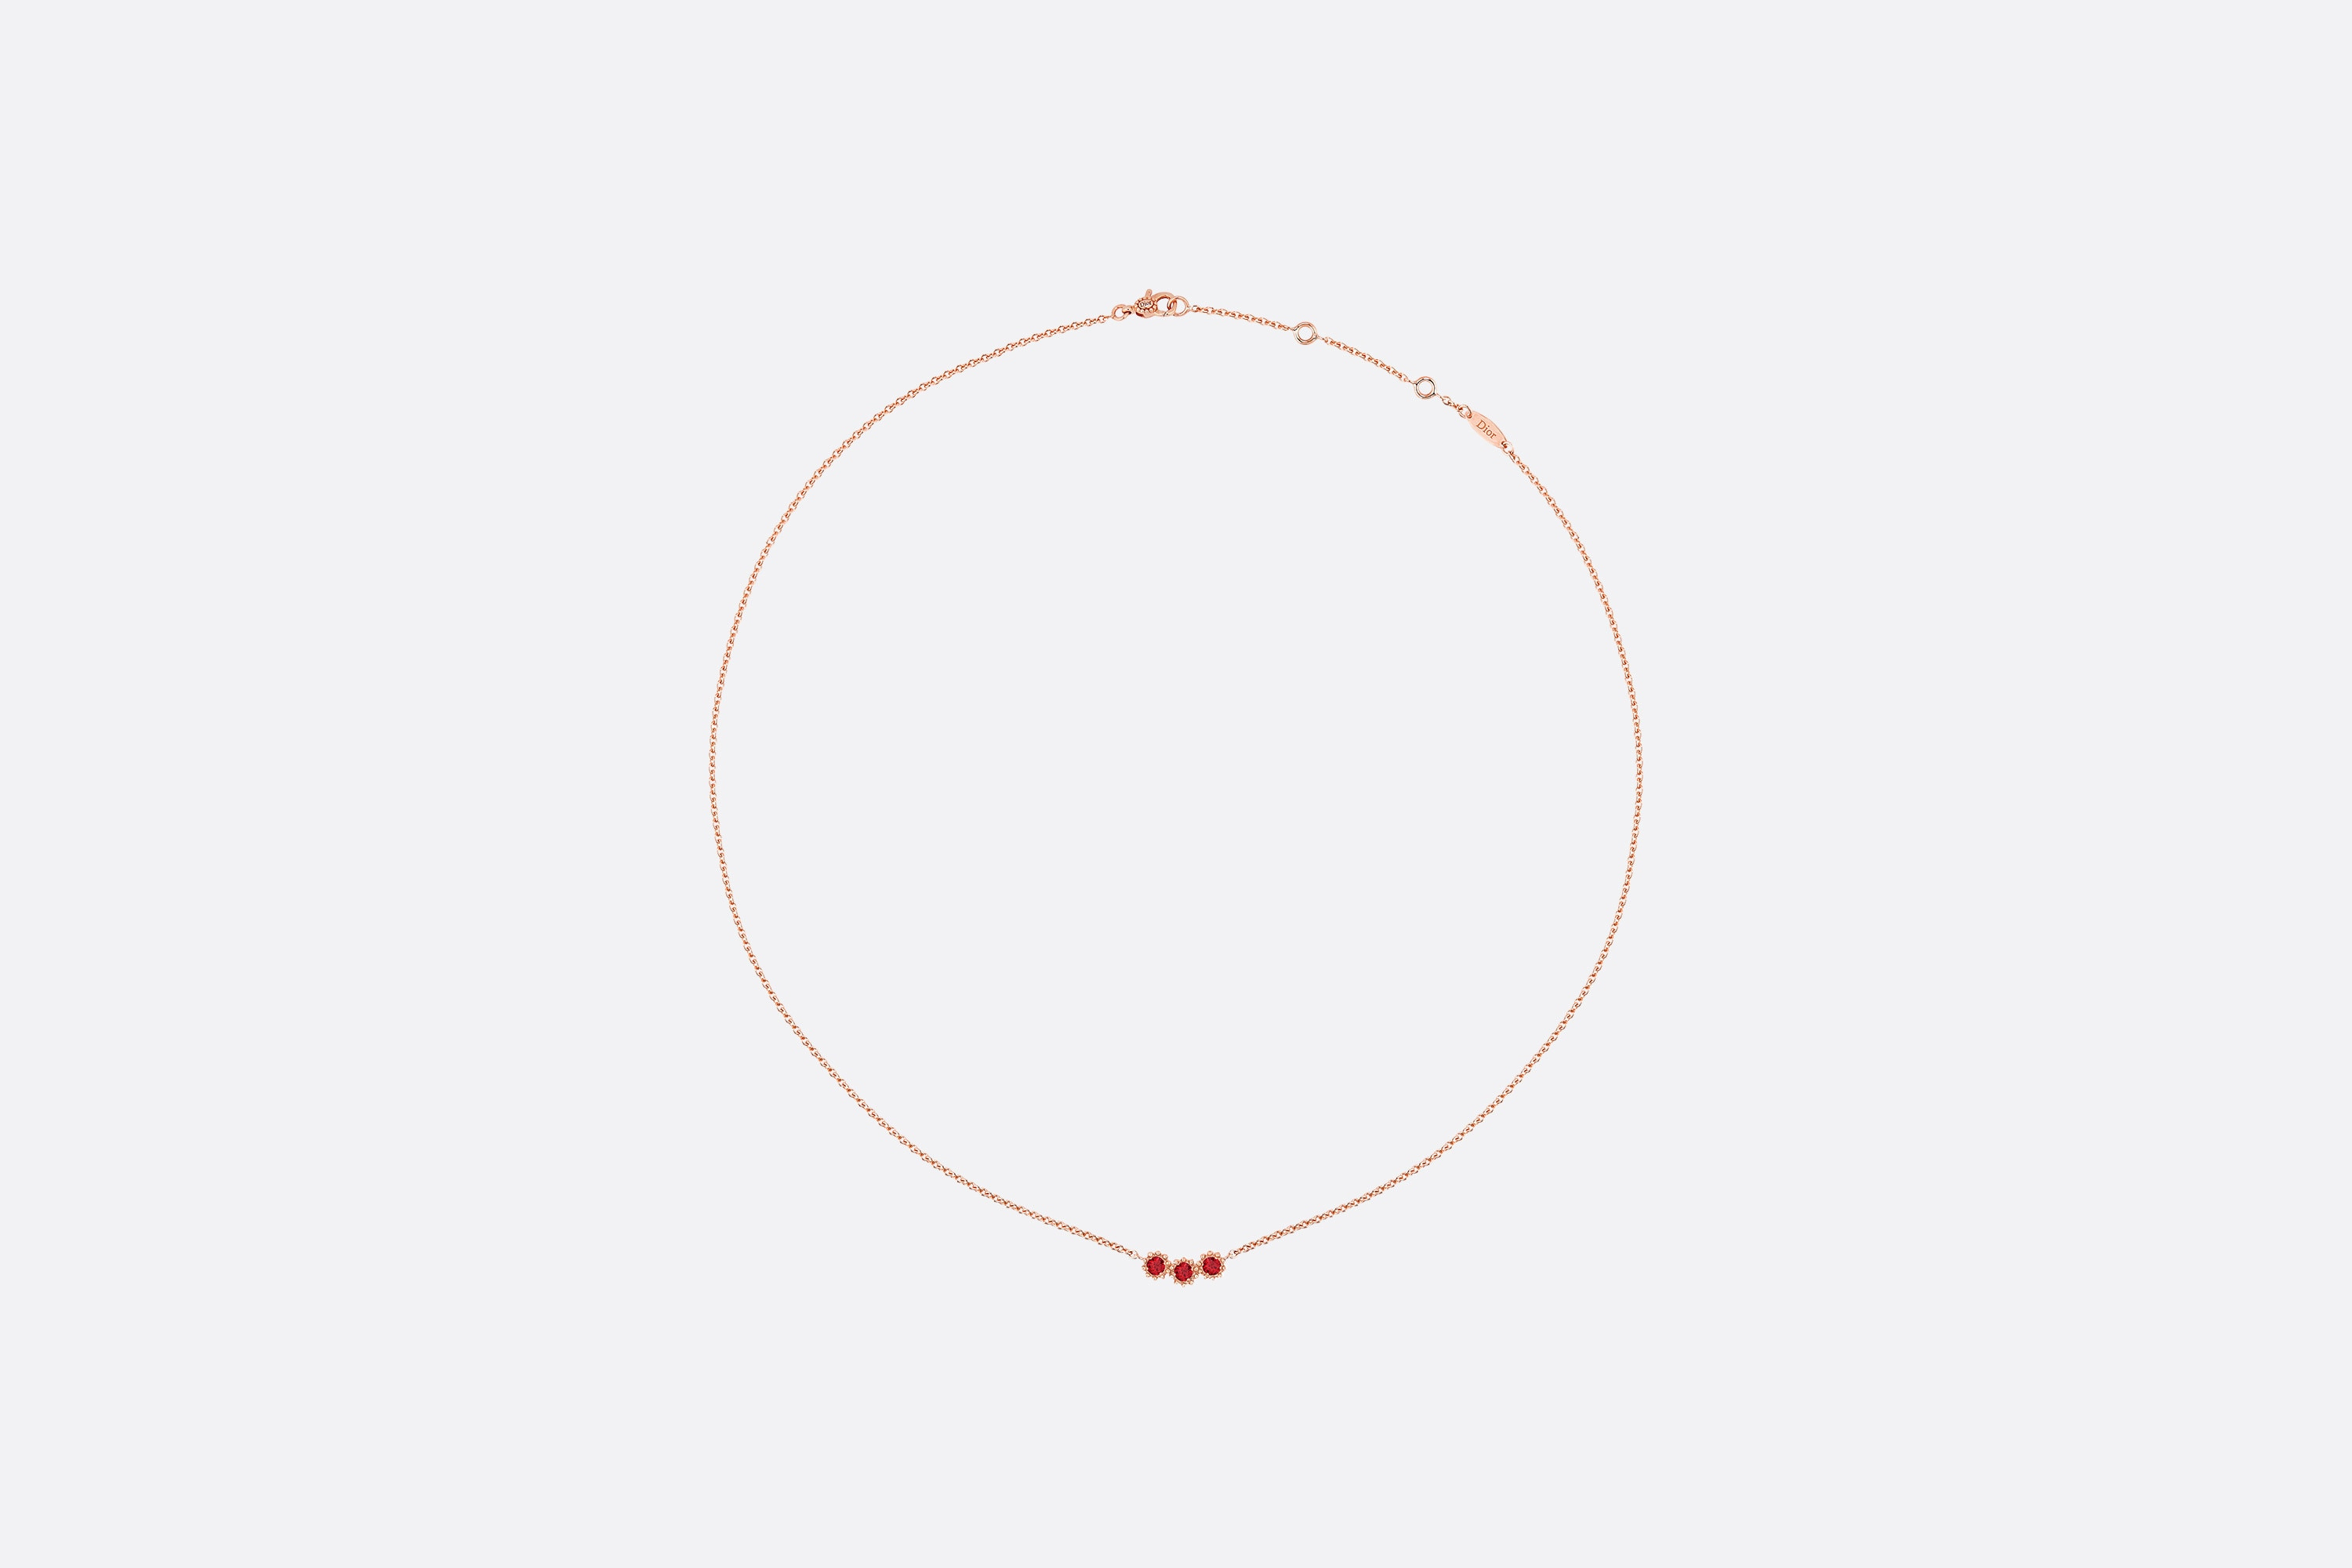 Necklace Length Diagram Mimirose Necklace 18k Pink Gold And Rubies